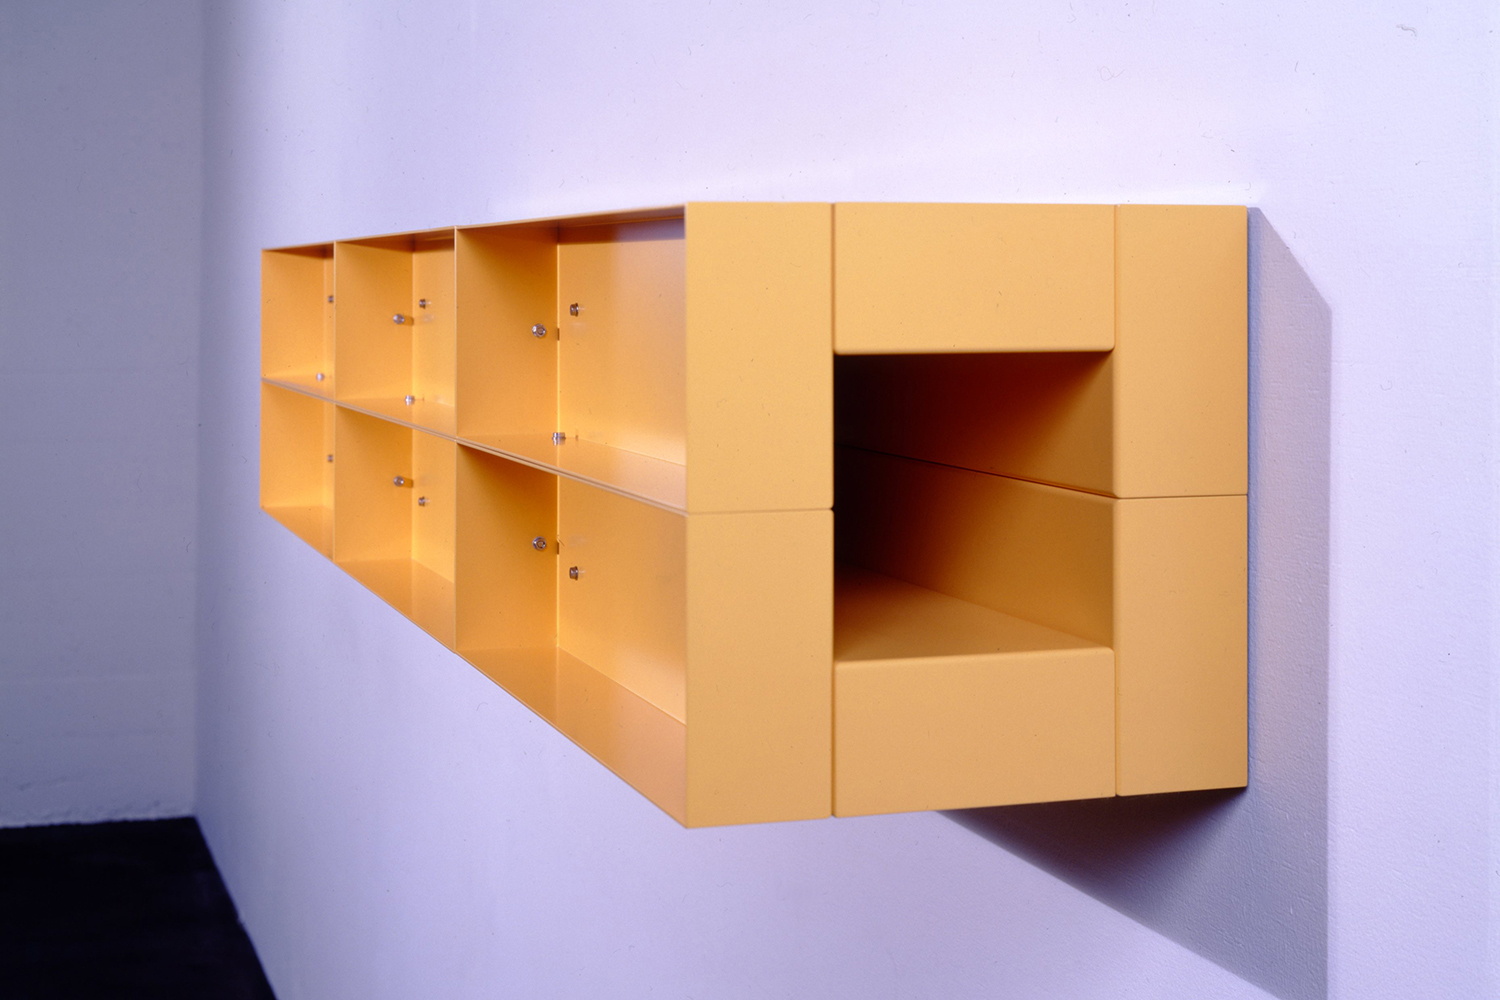 Untitled Yellow 1989|painted aluminum wall sculpture|30 x 180 x 30 cm